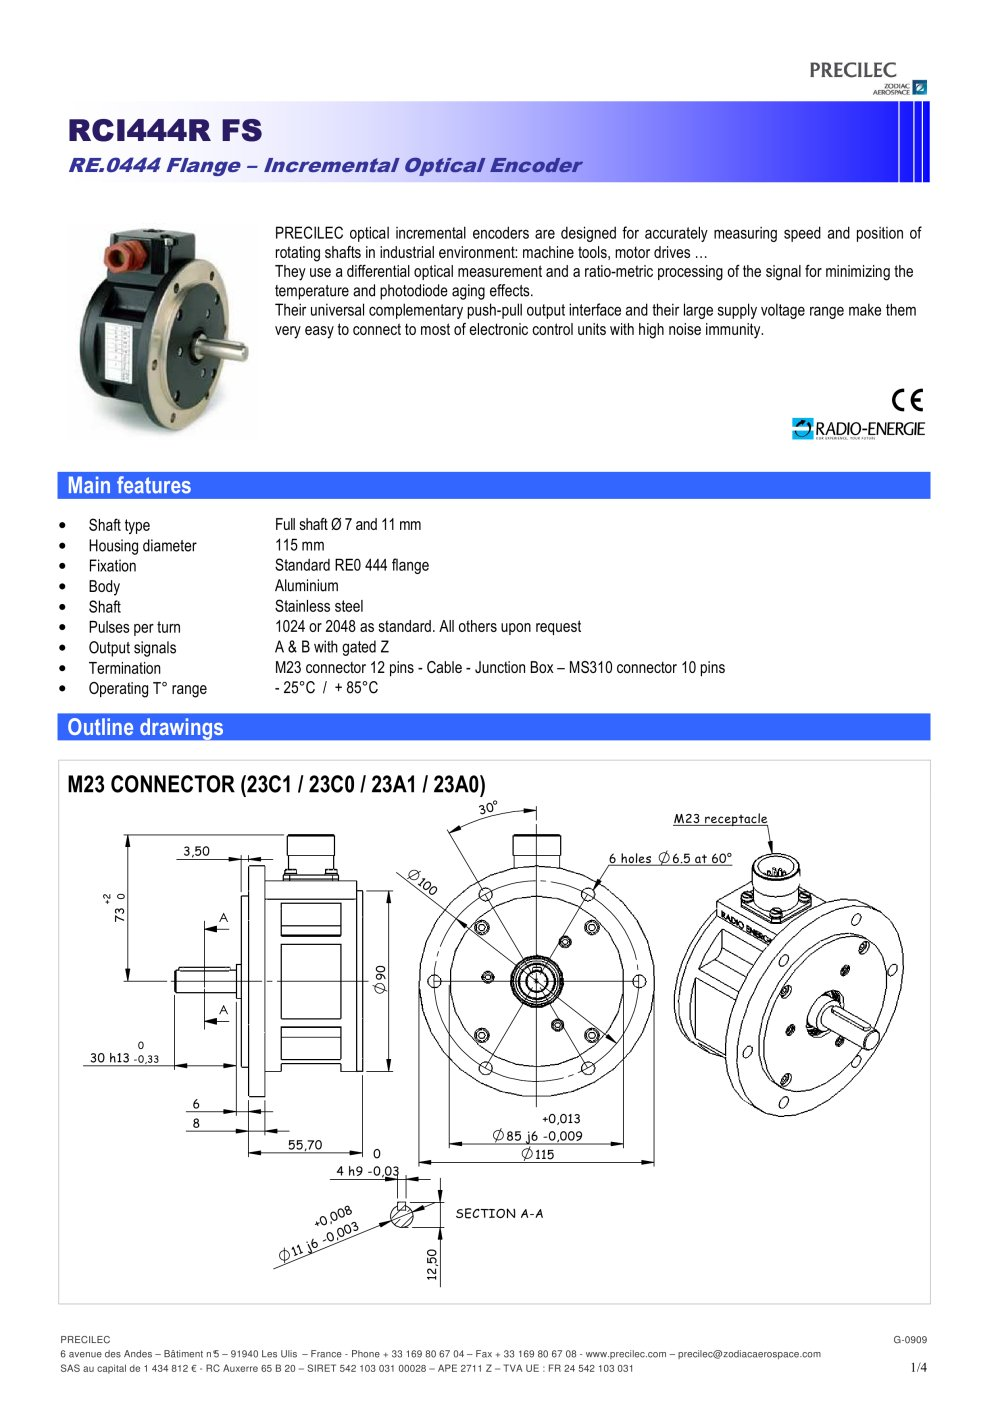 Precilec Radio Energie Incremental Optical Encoder With Re0 444 Dc To Ac Generator Wiring Diagram Tachometer Tacho Flange Reo 1 4 Pages